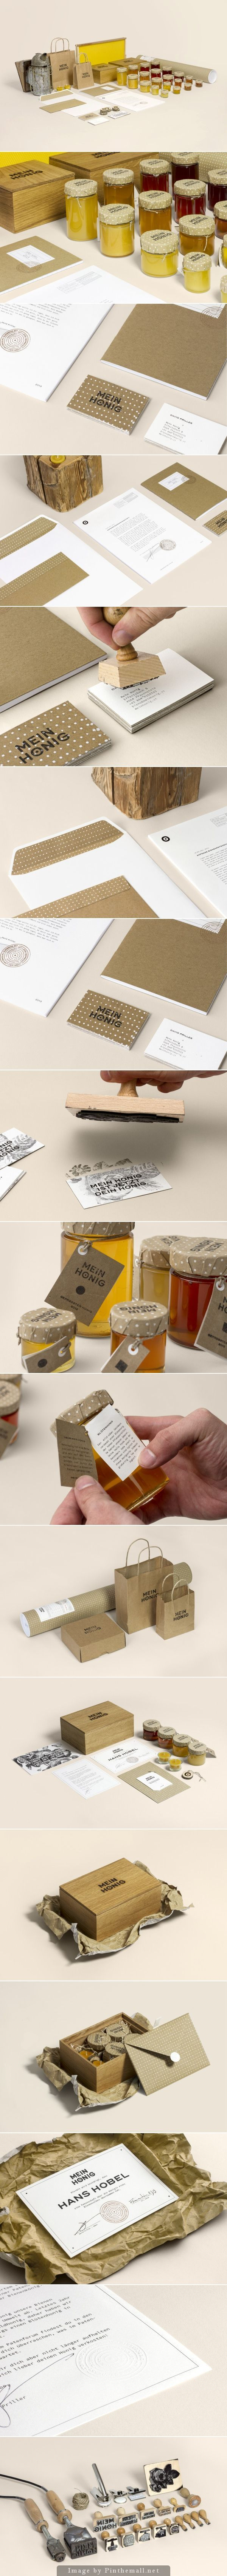 Mein Honig Honey – Brand Identity via Thomas Lichtblau: